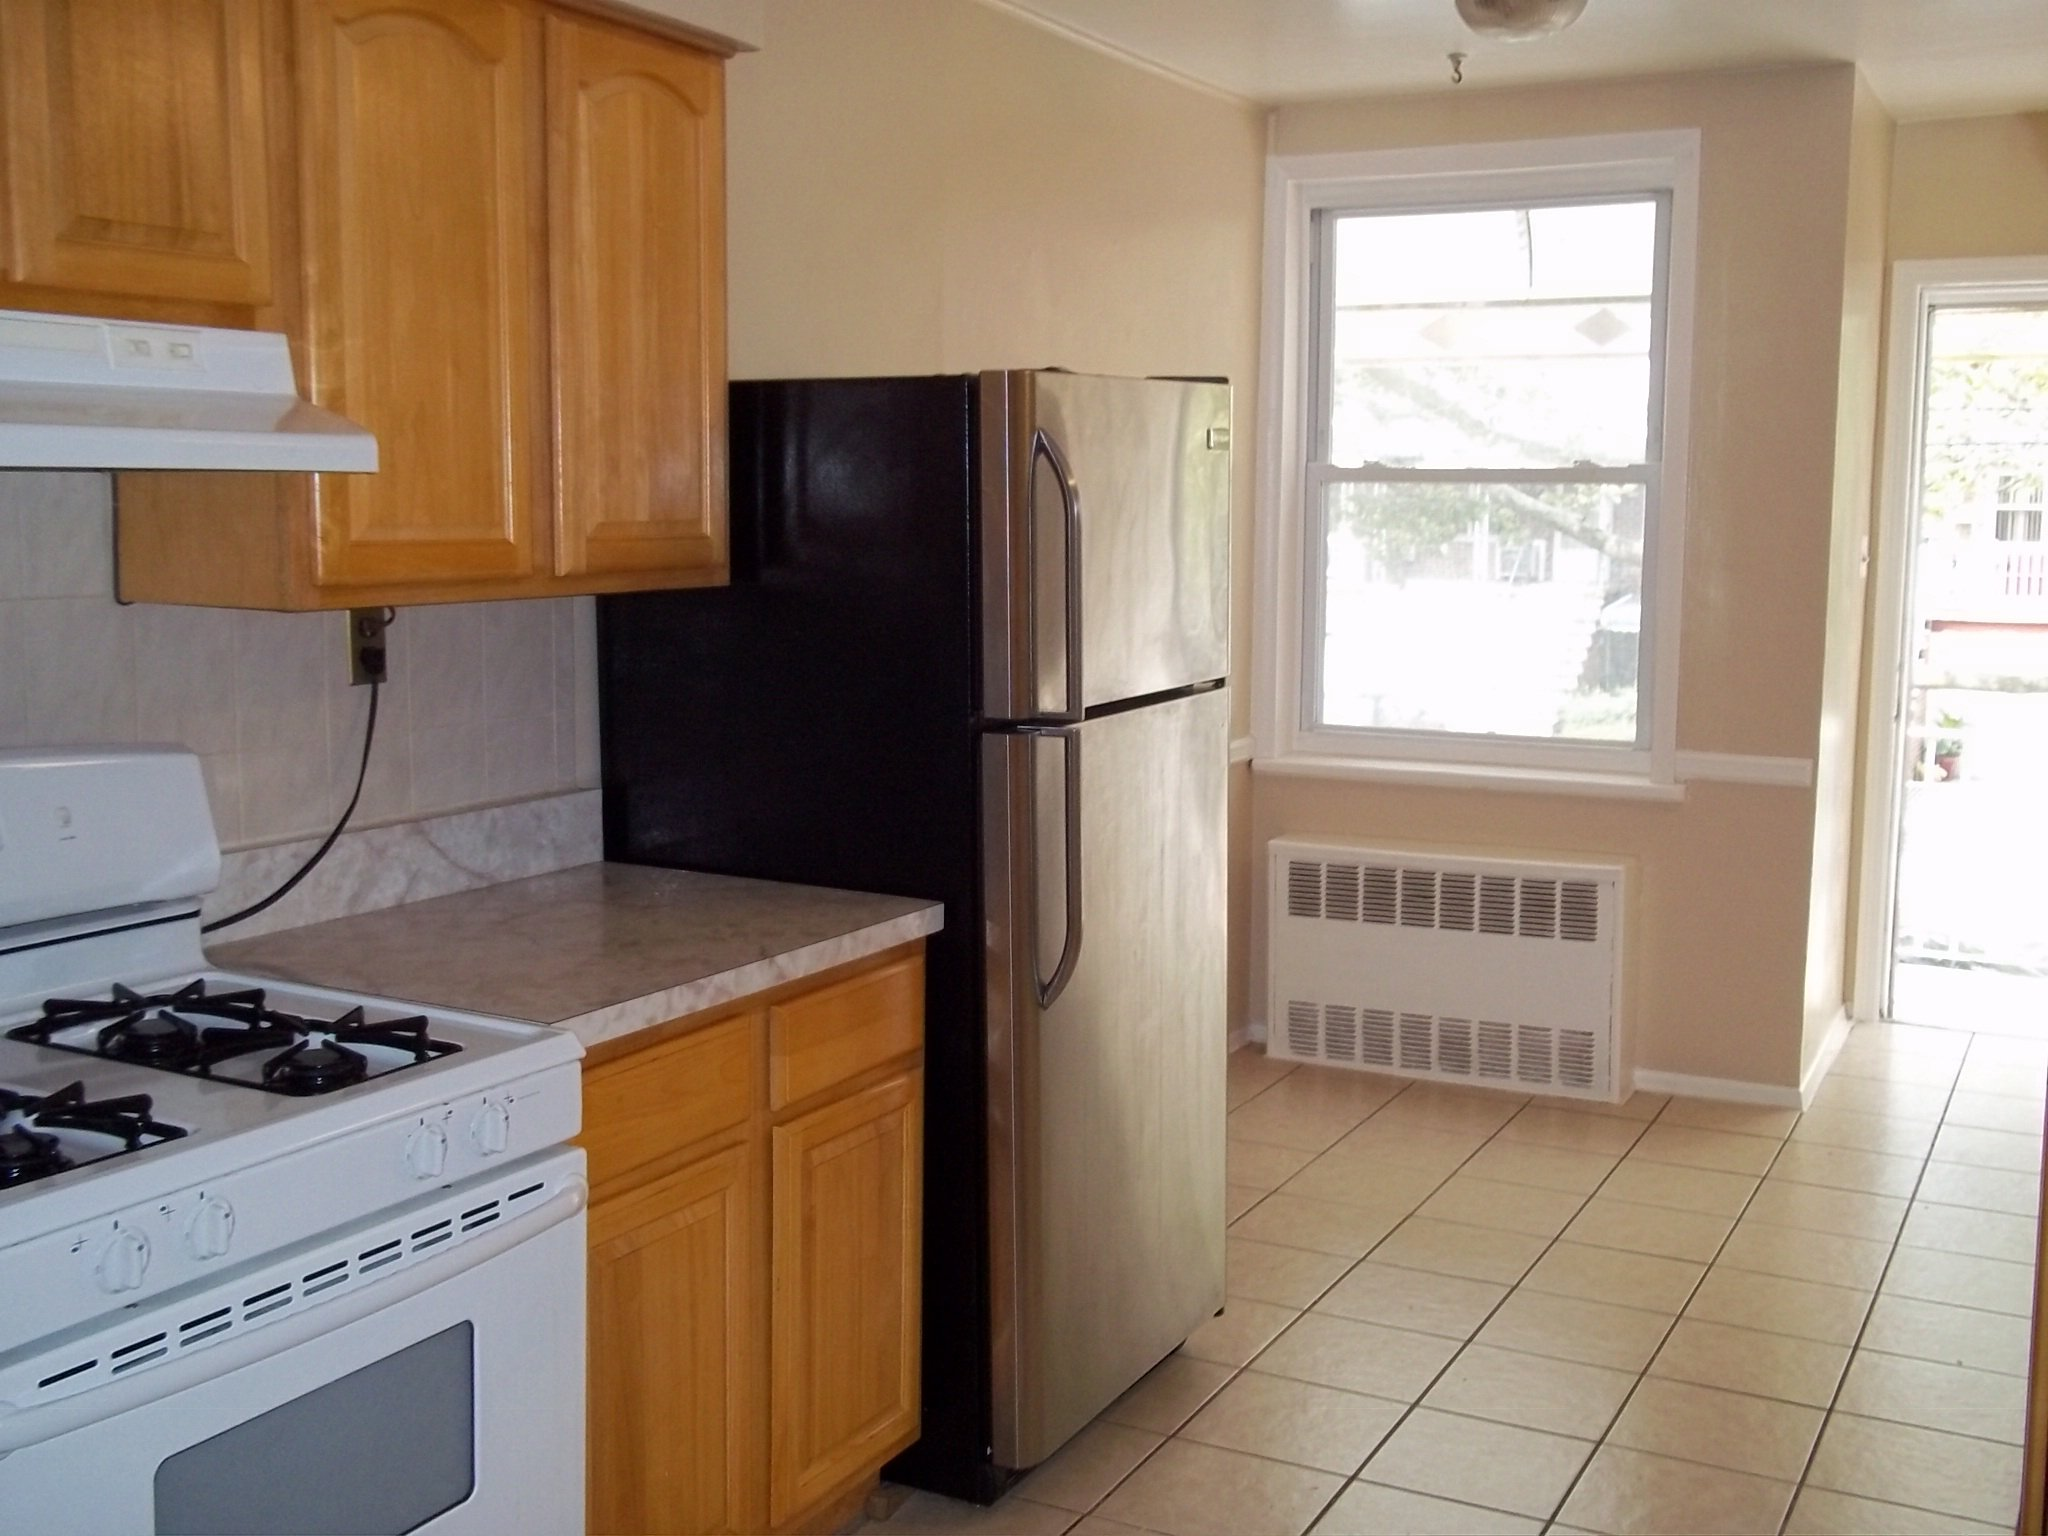 2 bedroom canarsie apartment for rent brooklyn crg3097 for 2 bedroom apartments for rent nyc